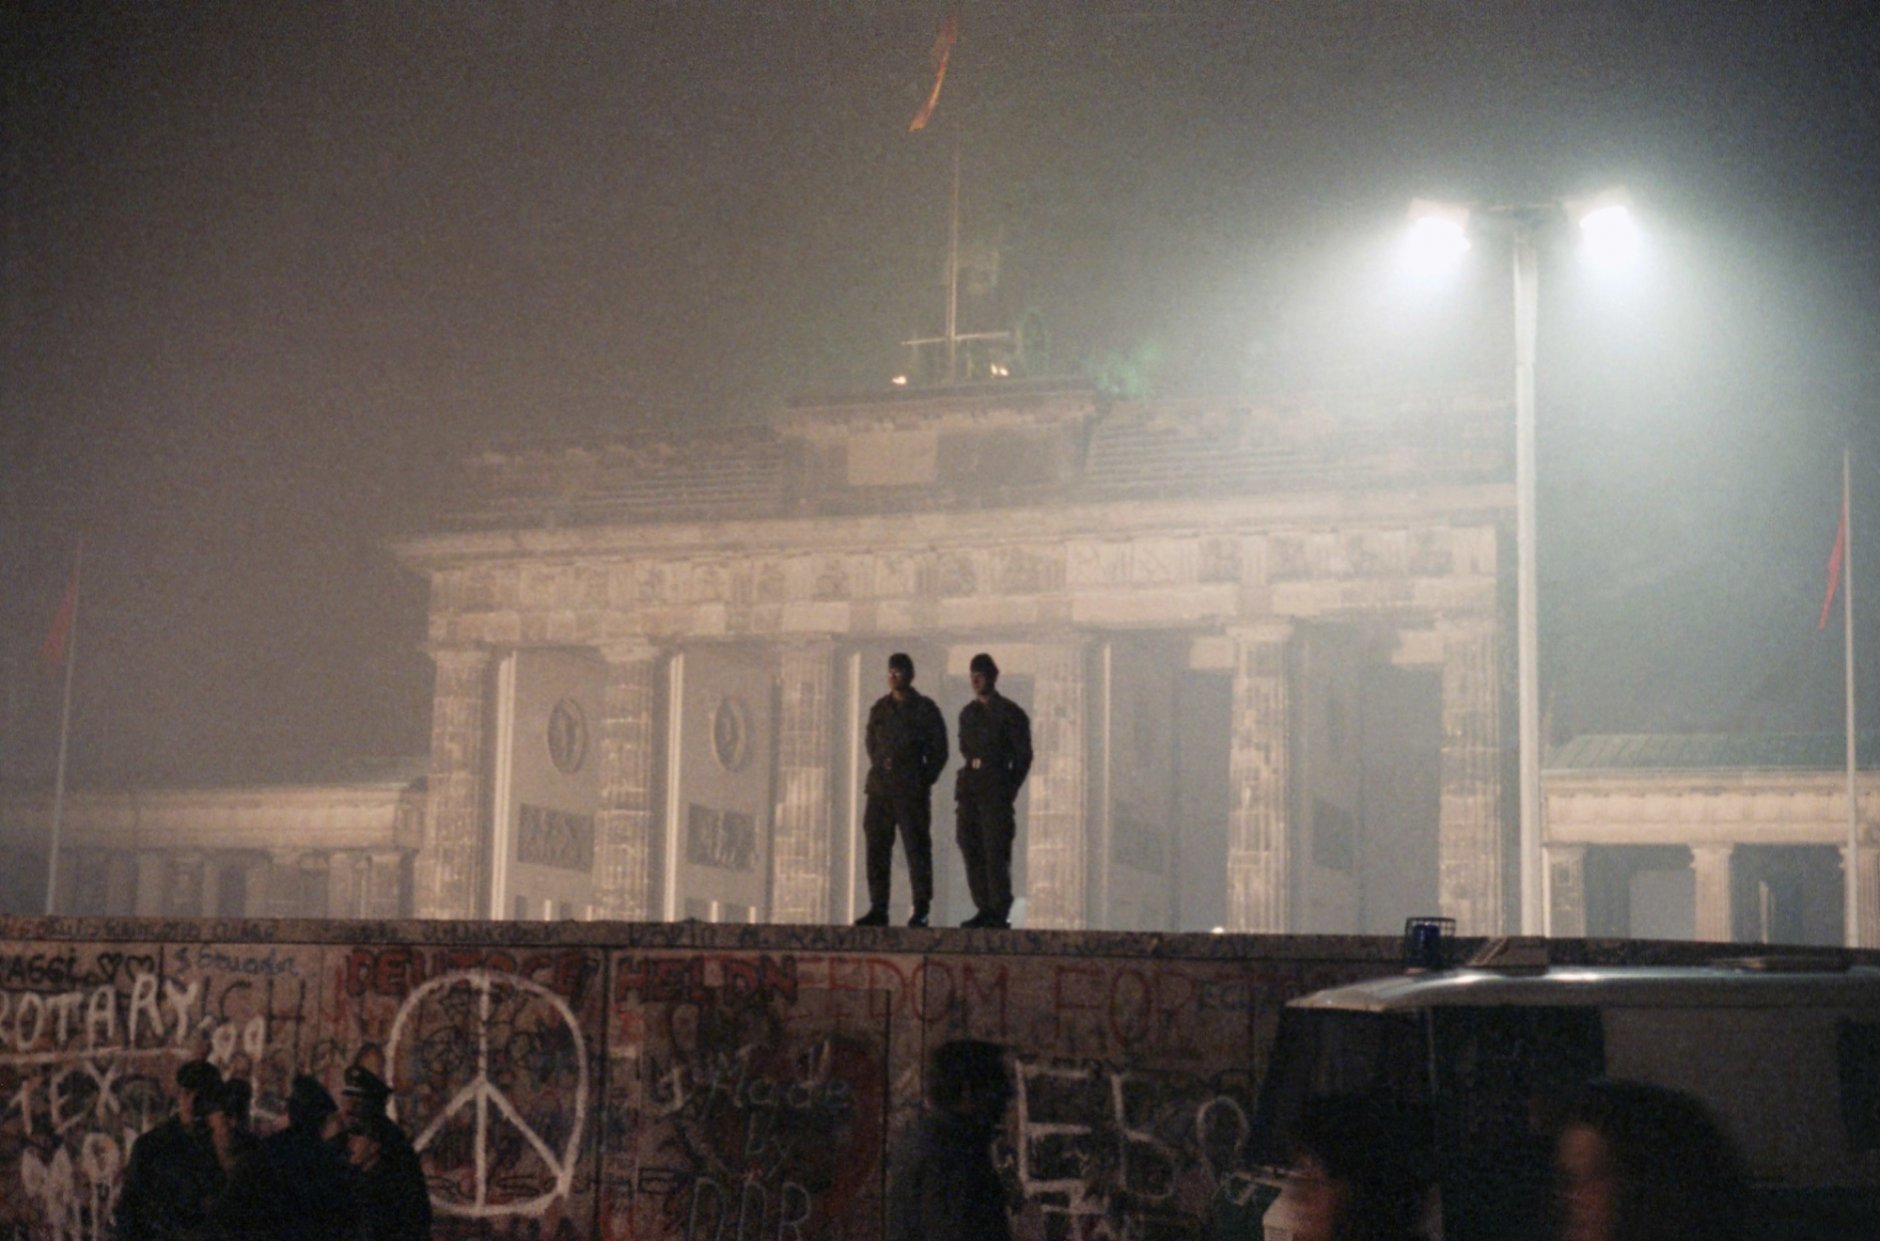 FILE - In this Nov. 14, 1989 file photo two East German border guards patrolled atop of Berlin Wall with the illuminated Brandenburg Gate in background, in Berlin. An artist collective plan to rebuild the Berlin wall during an art project in Berlin in October.  (AP Photo/Jockel Finck, file)